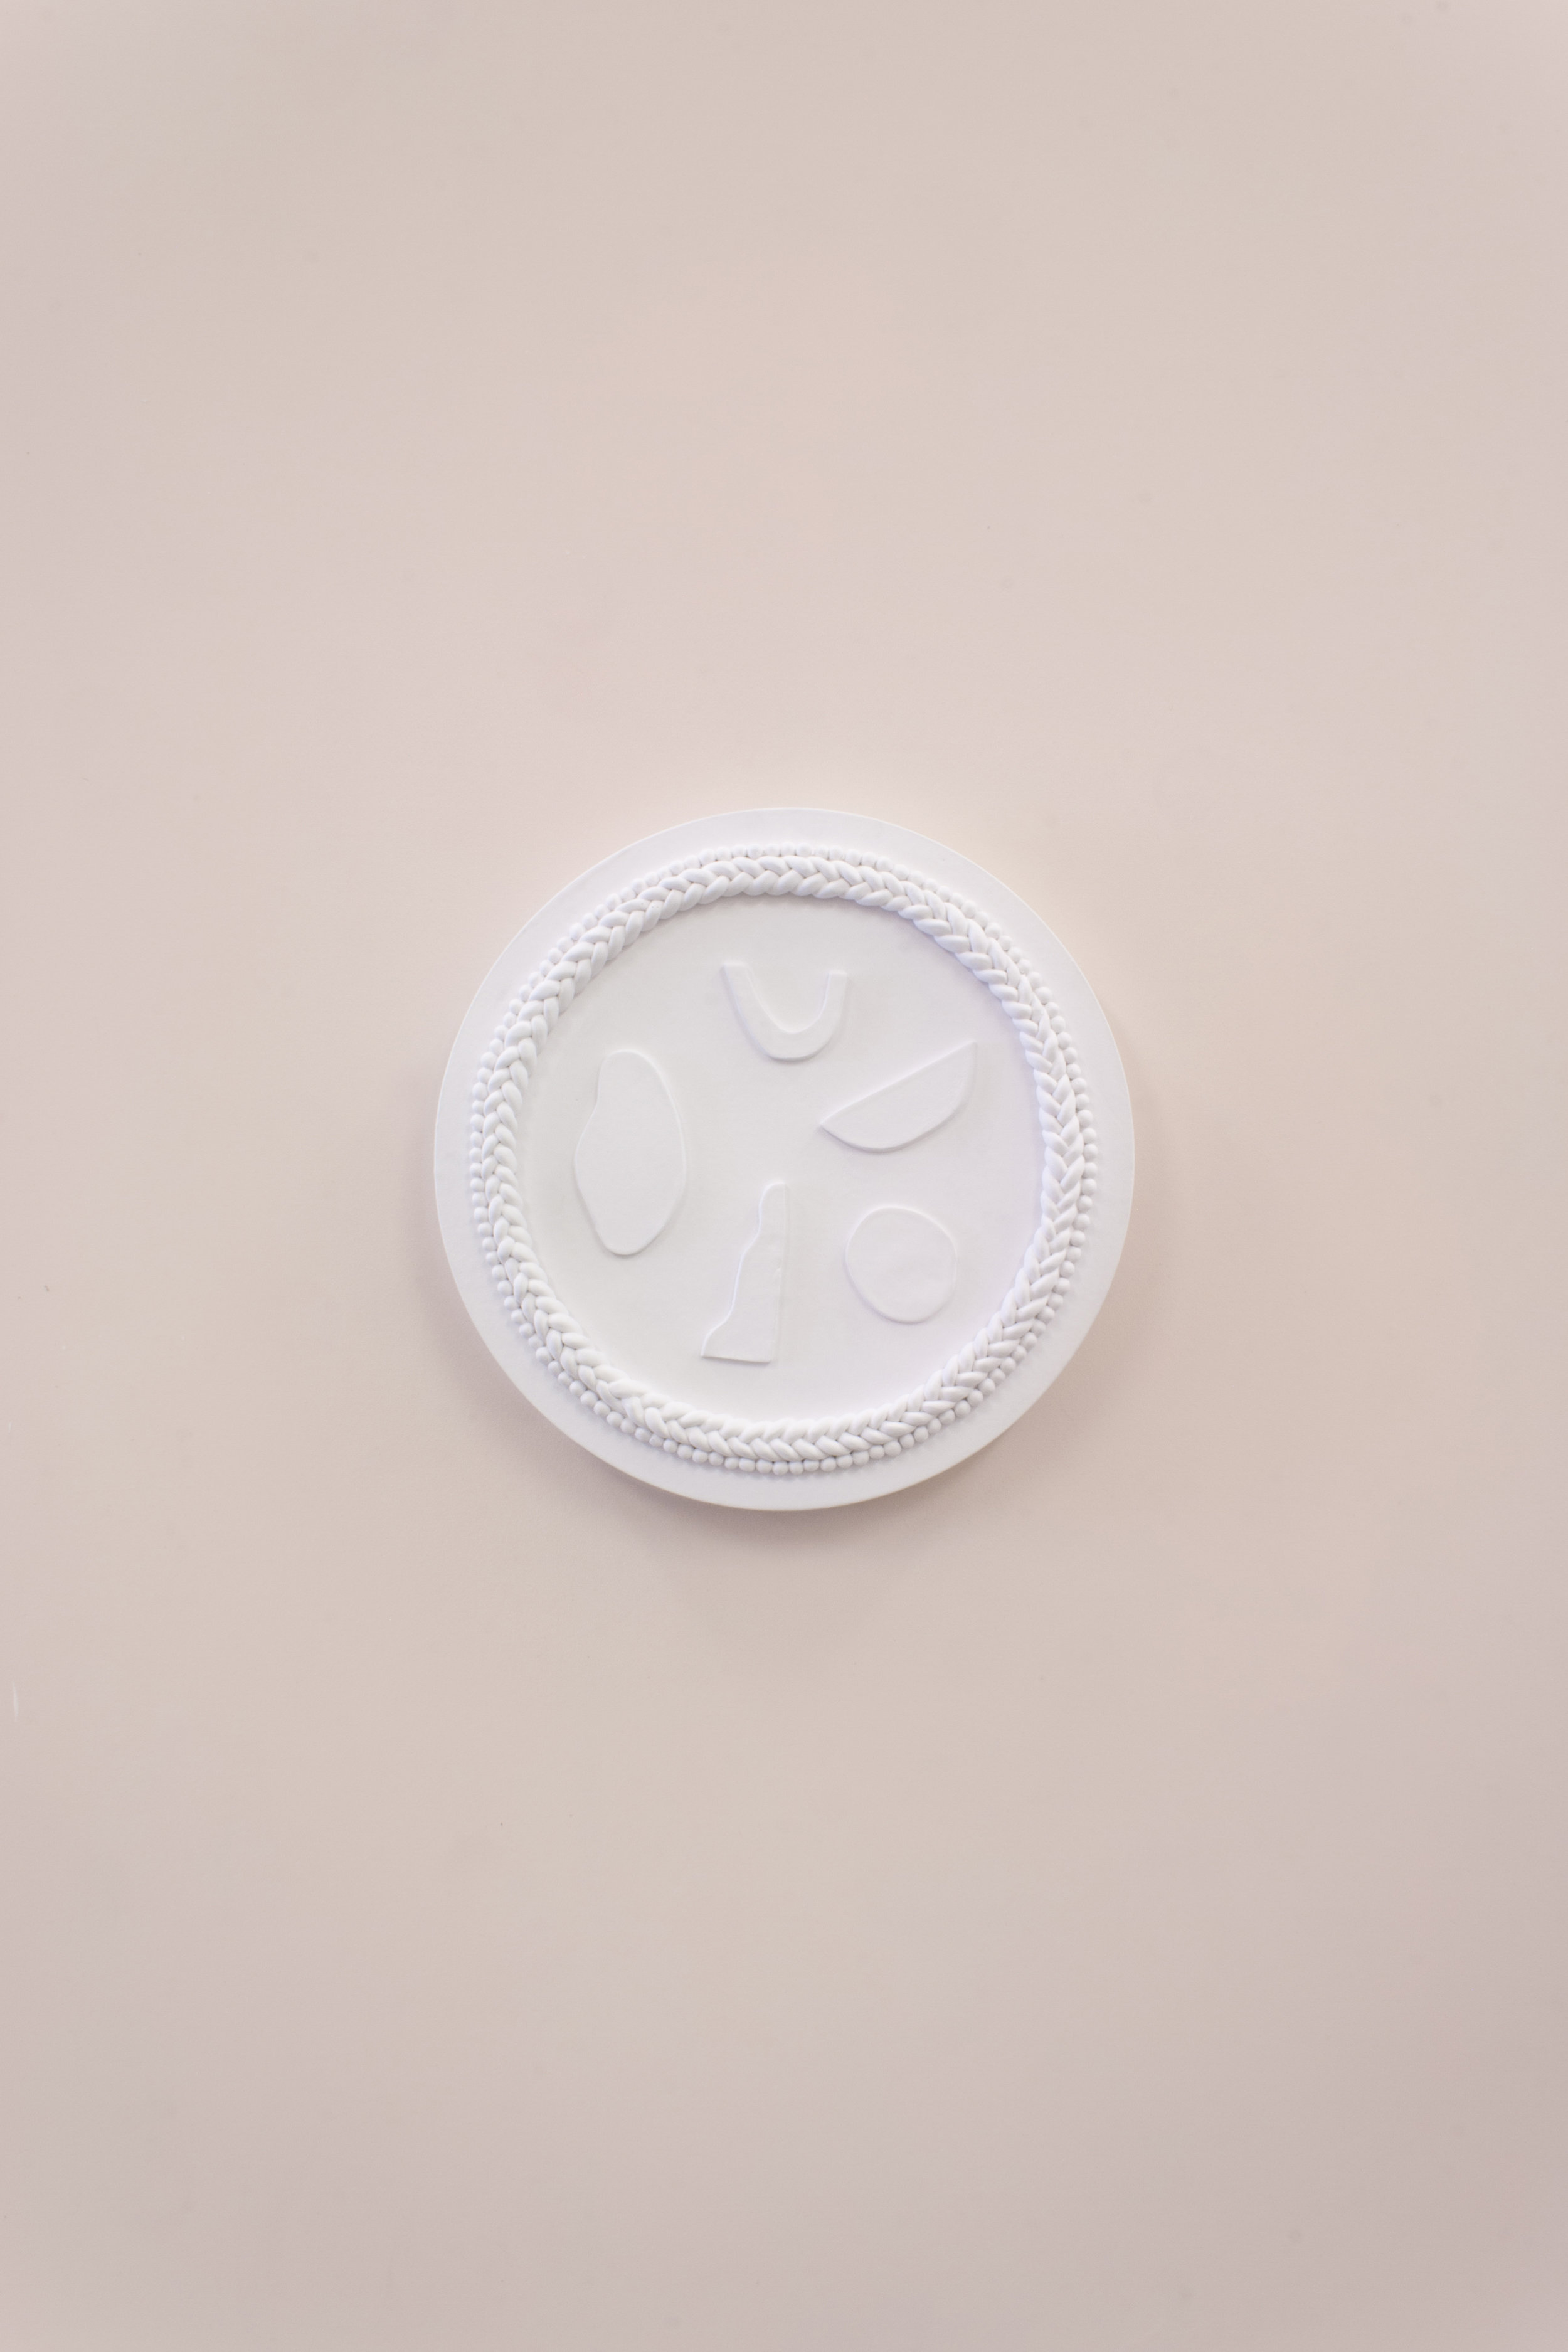 Ceiling medallion Polar I by c.a. walac.